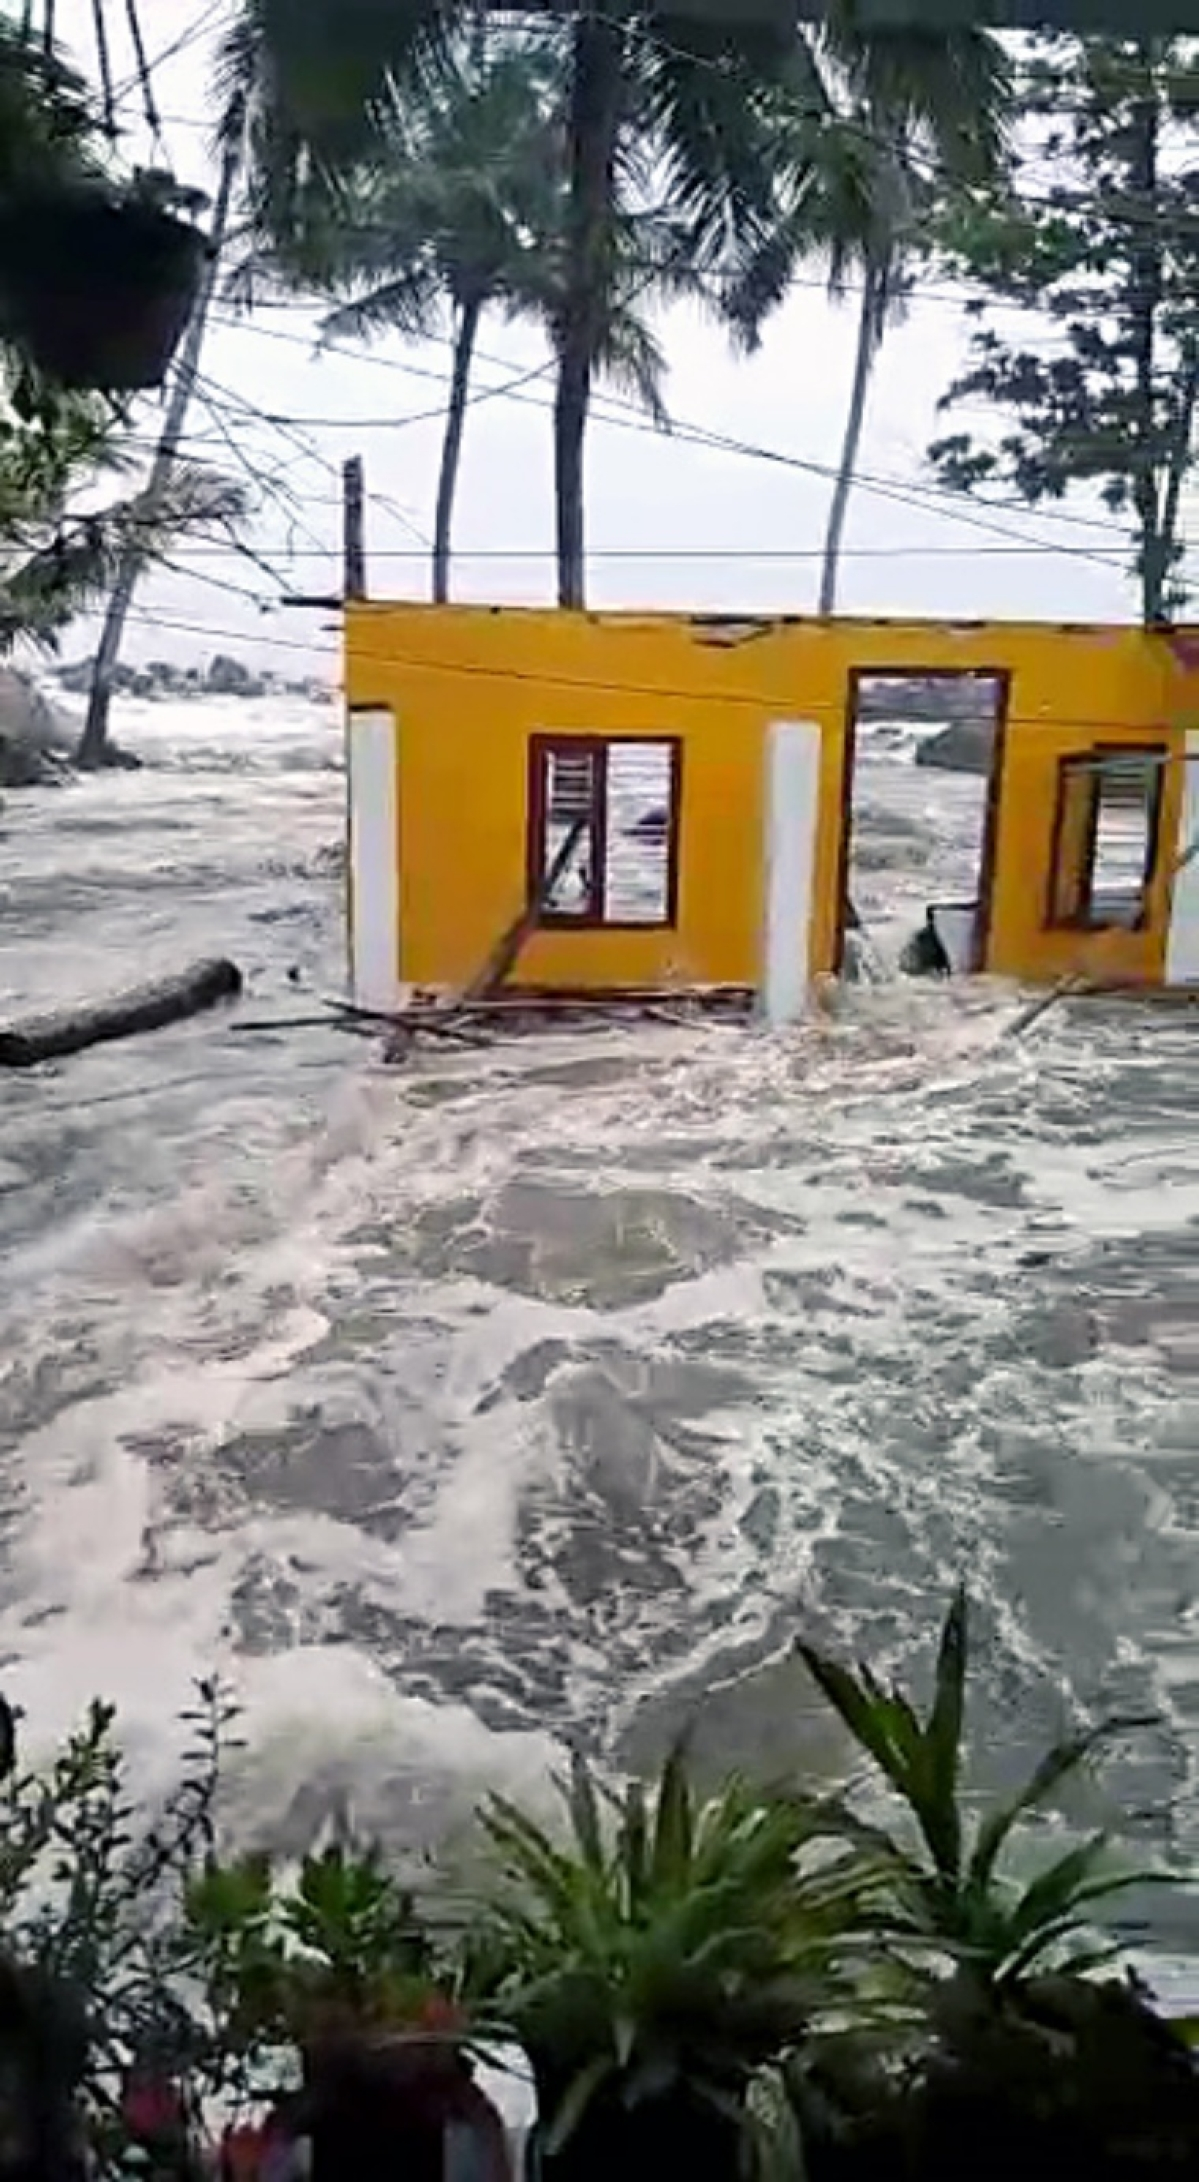 House getting sweeped away in the wayer logged due to heavy rains